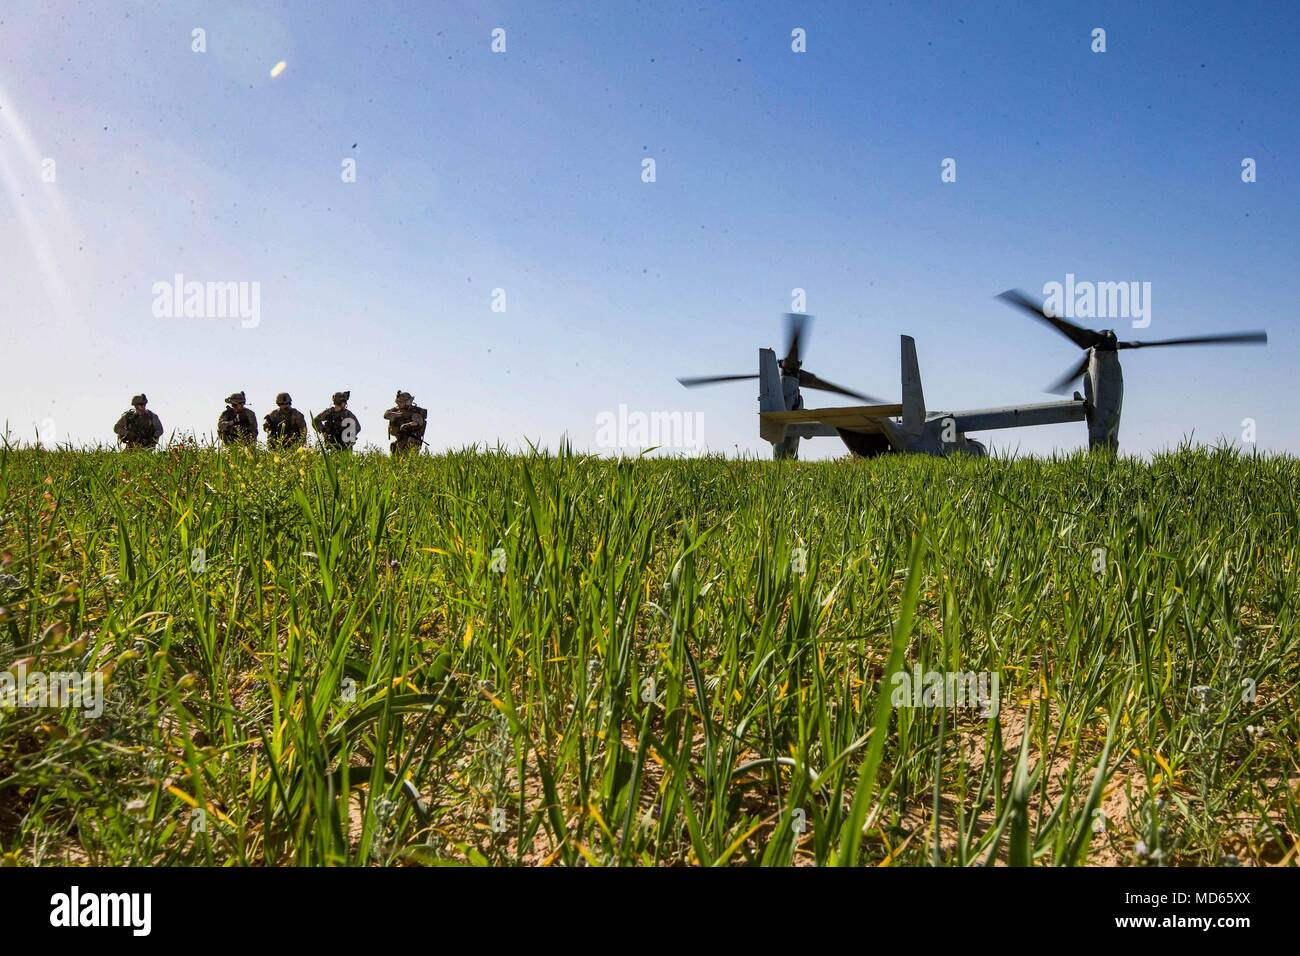 HAIFA, Israel (March 14, 2018) U.S. Marines assigned to the Tactical Recovery of Aircraft Personnel (TRAP) team, 26th Marine Expeditionary Unit (MEU), arrive in a landing zone of an MV-22B Osprey aircraft to conduct a simulated search mission, in Haifa, Israel, March 14, 2018. Juniper Cobra is a computer assisted exercise conducted through computer simulations focused on improving combined missile defense capabilities and overall interoperability between the U.S. European Command and Israel Defense Force. (U.S. Marine Corps photo by Lance Cpl. Tojyea G. Matally/Released) Stock Photo